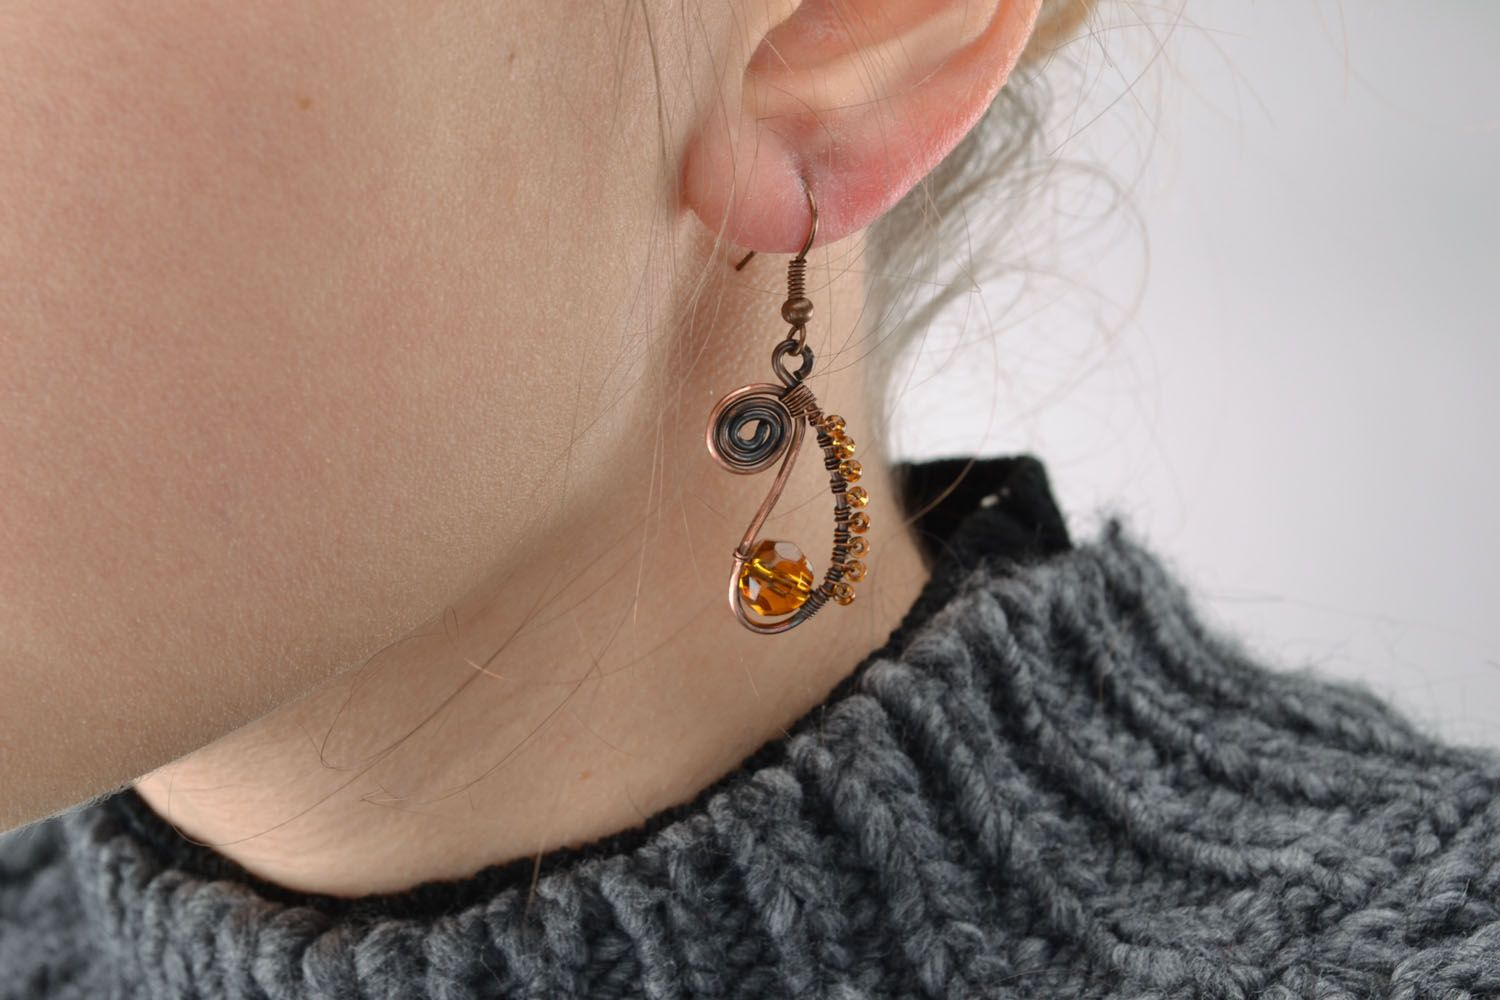 Earrings made of copper wire photo 5